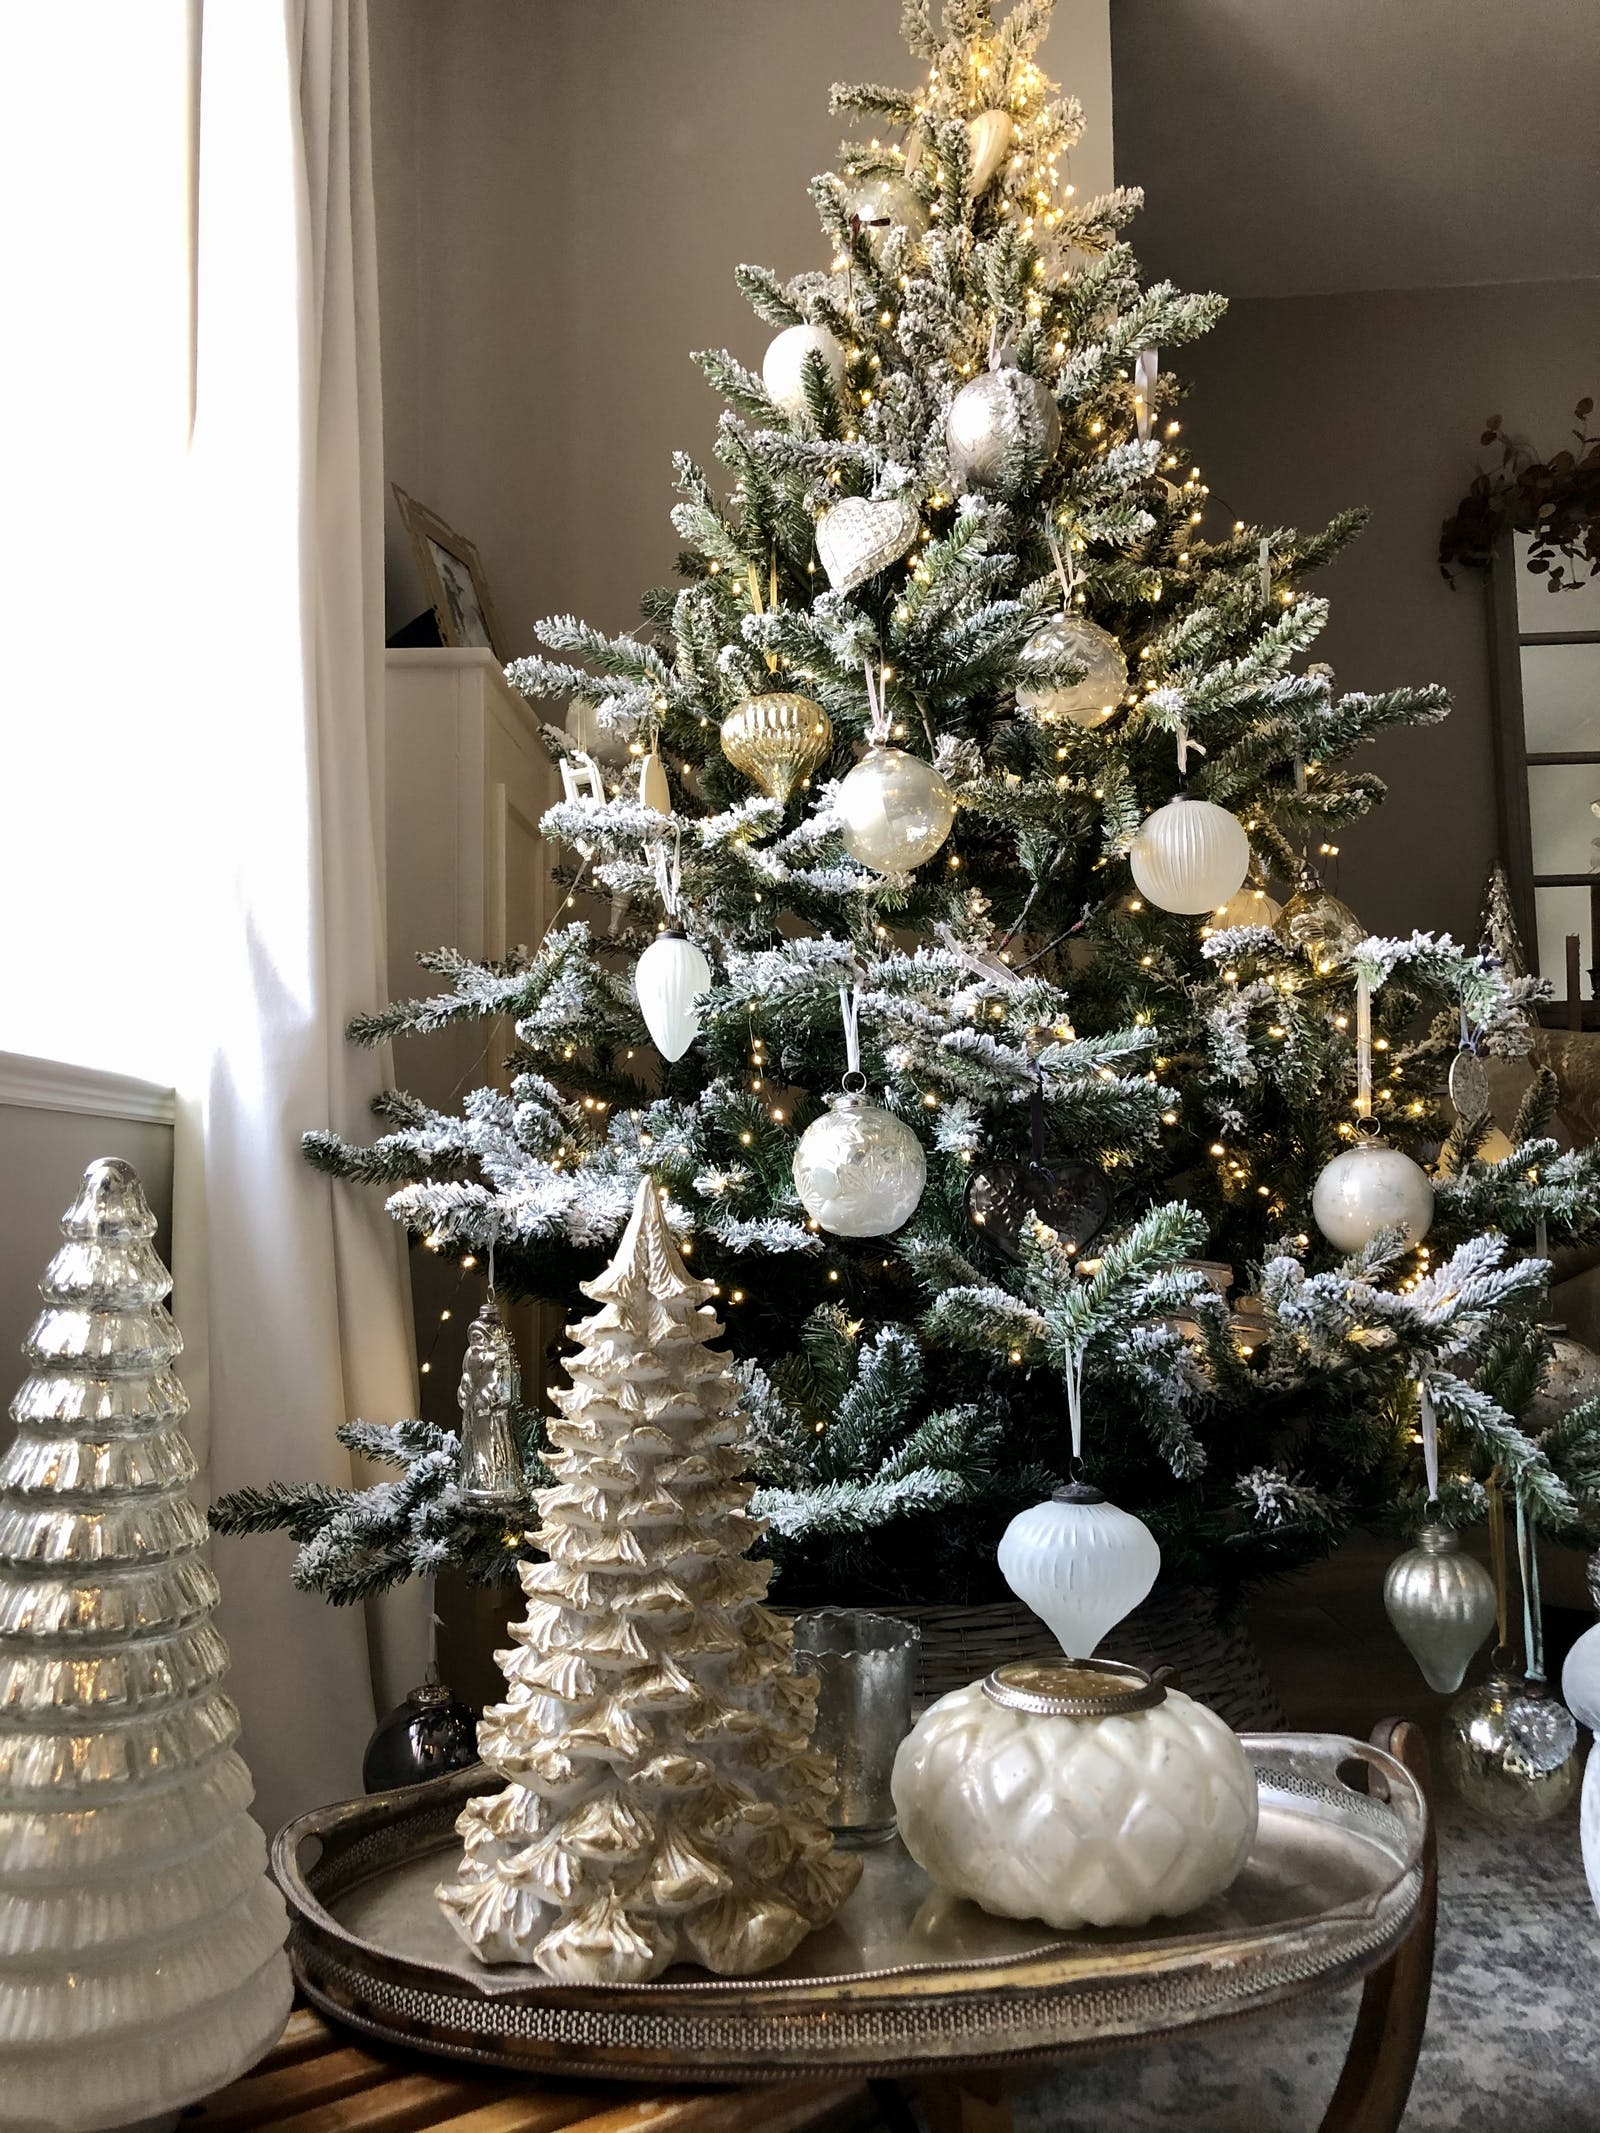 Christmas tree with snow effect and glass baubles in white, gold and ivory